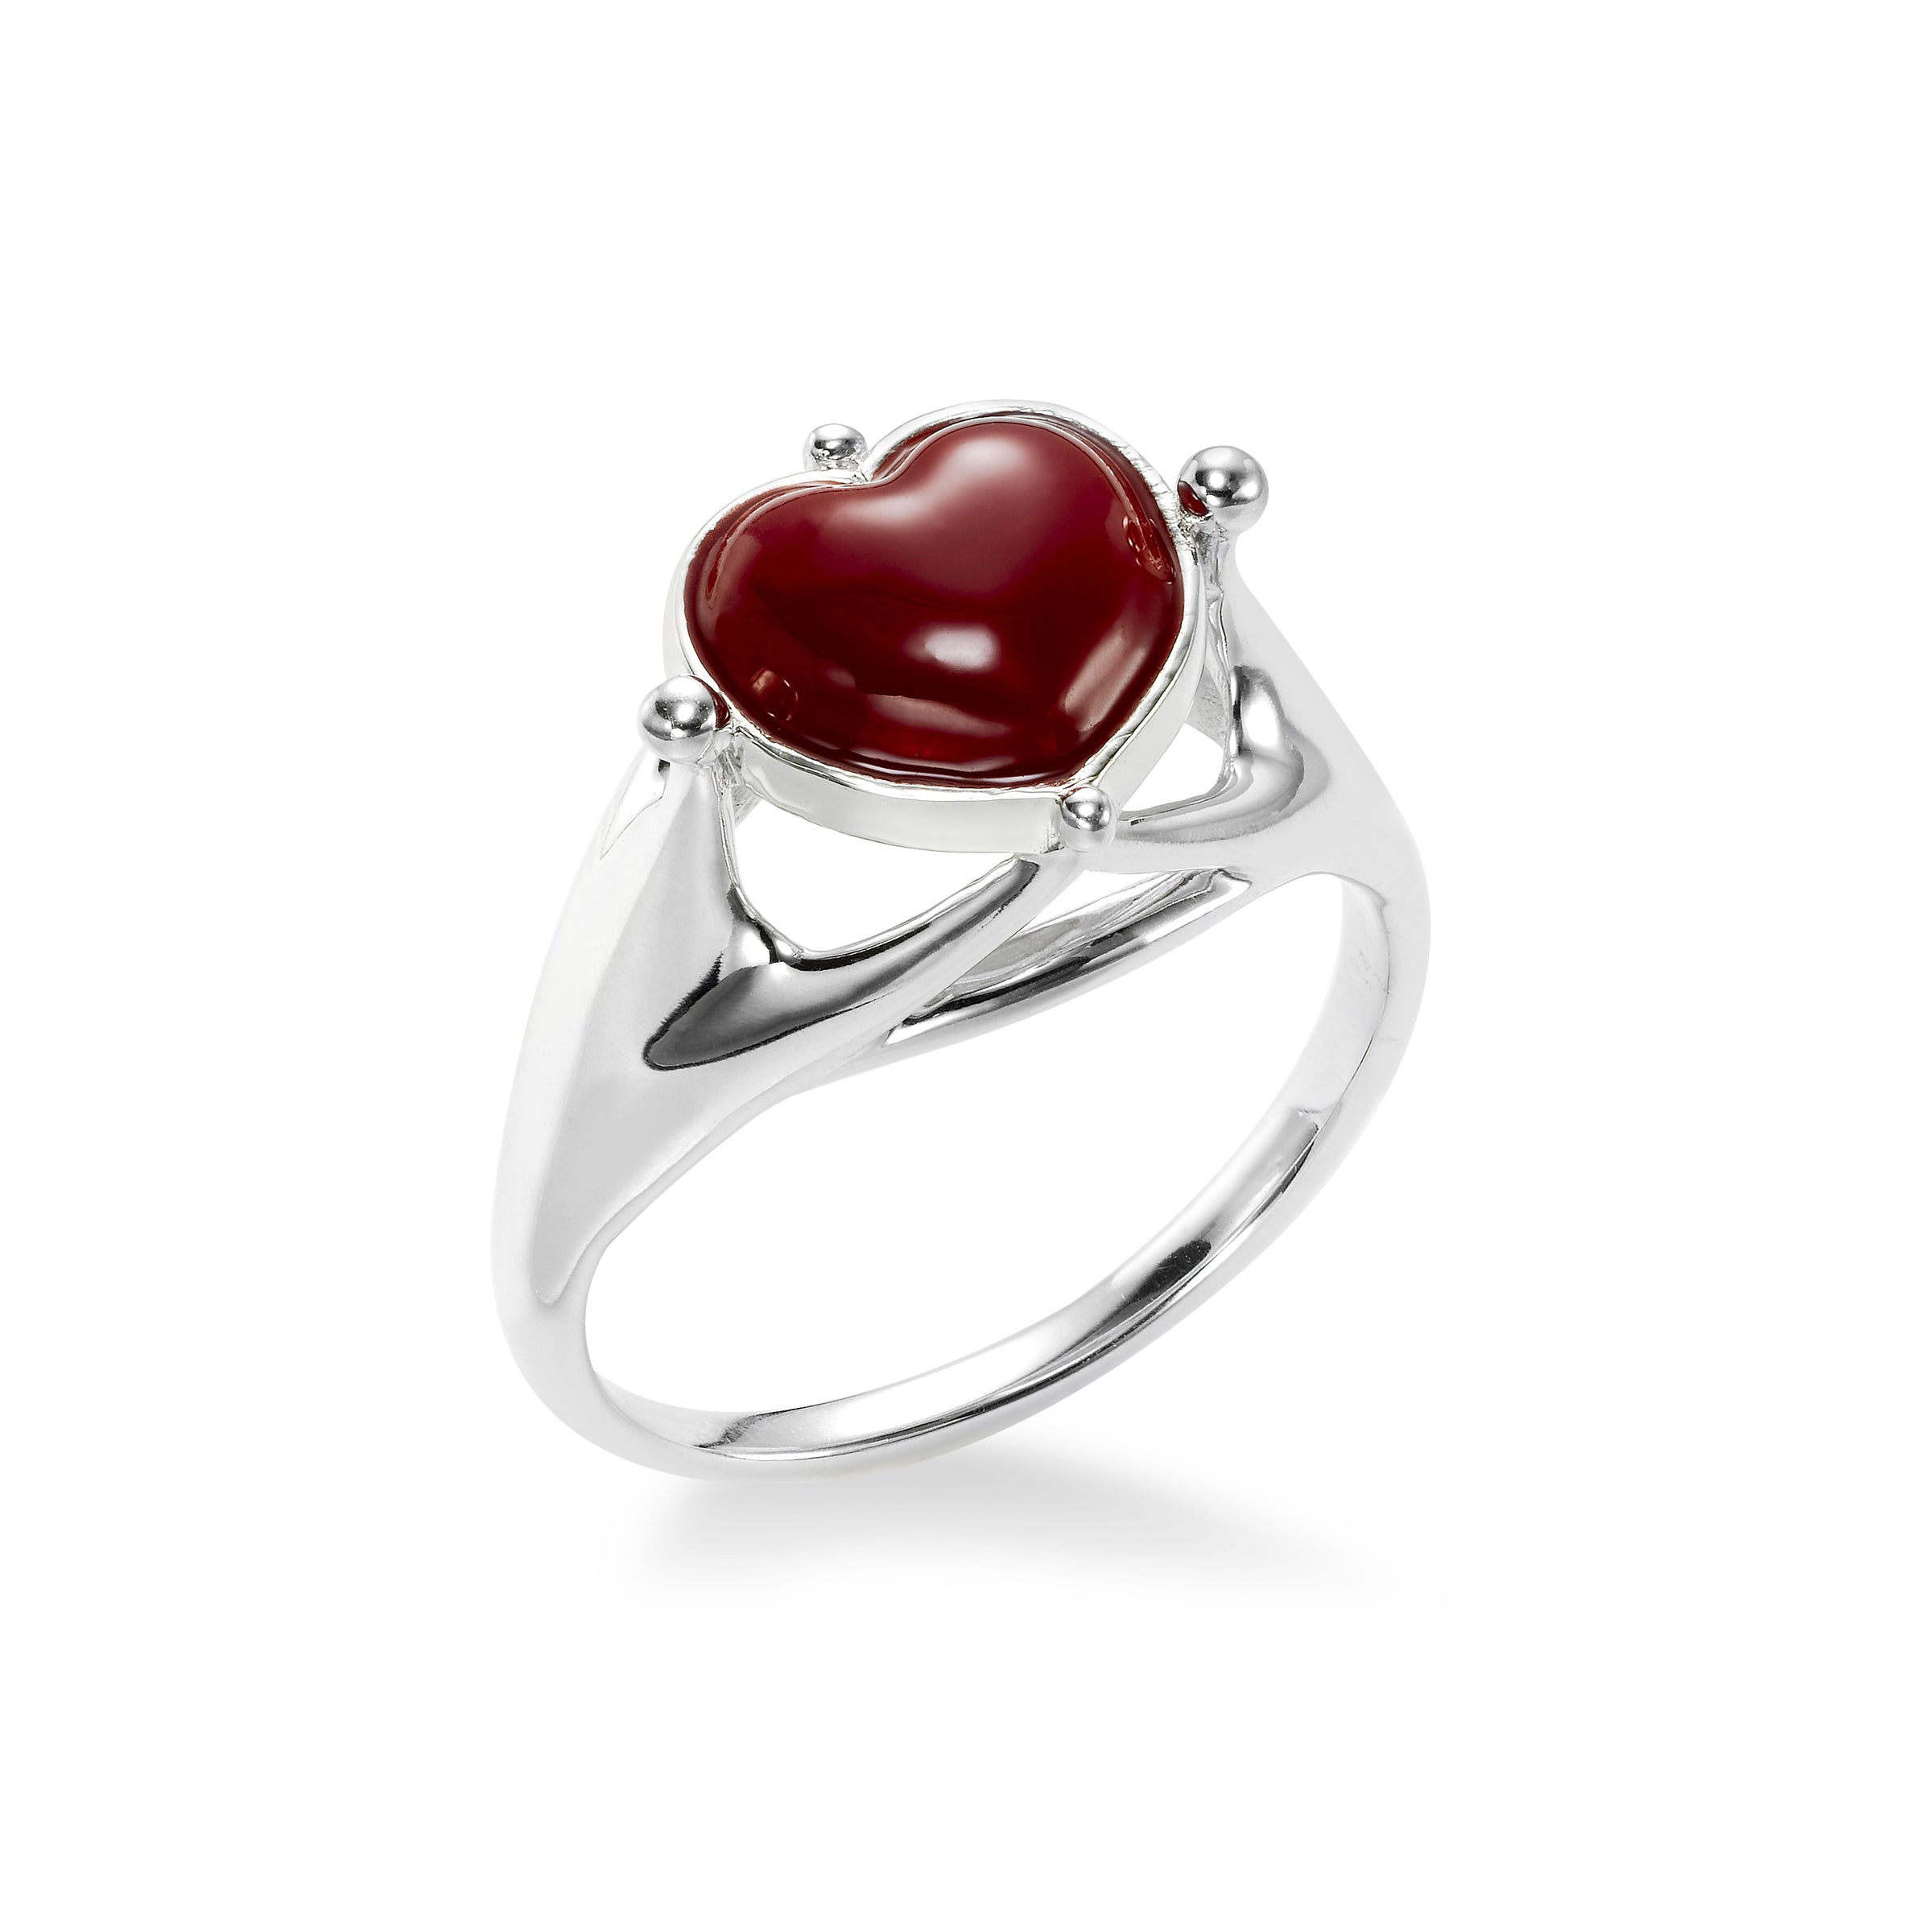 Red Enamel Heart Ring, Sterling Silver, Award Winner